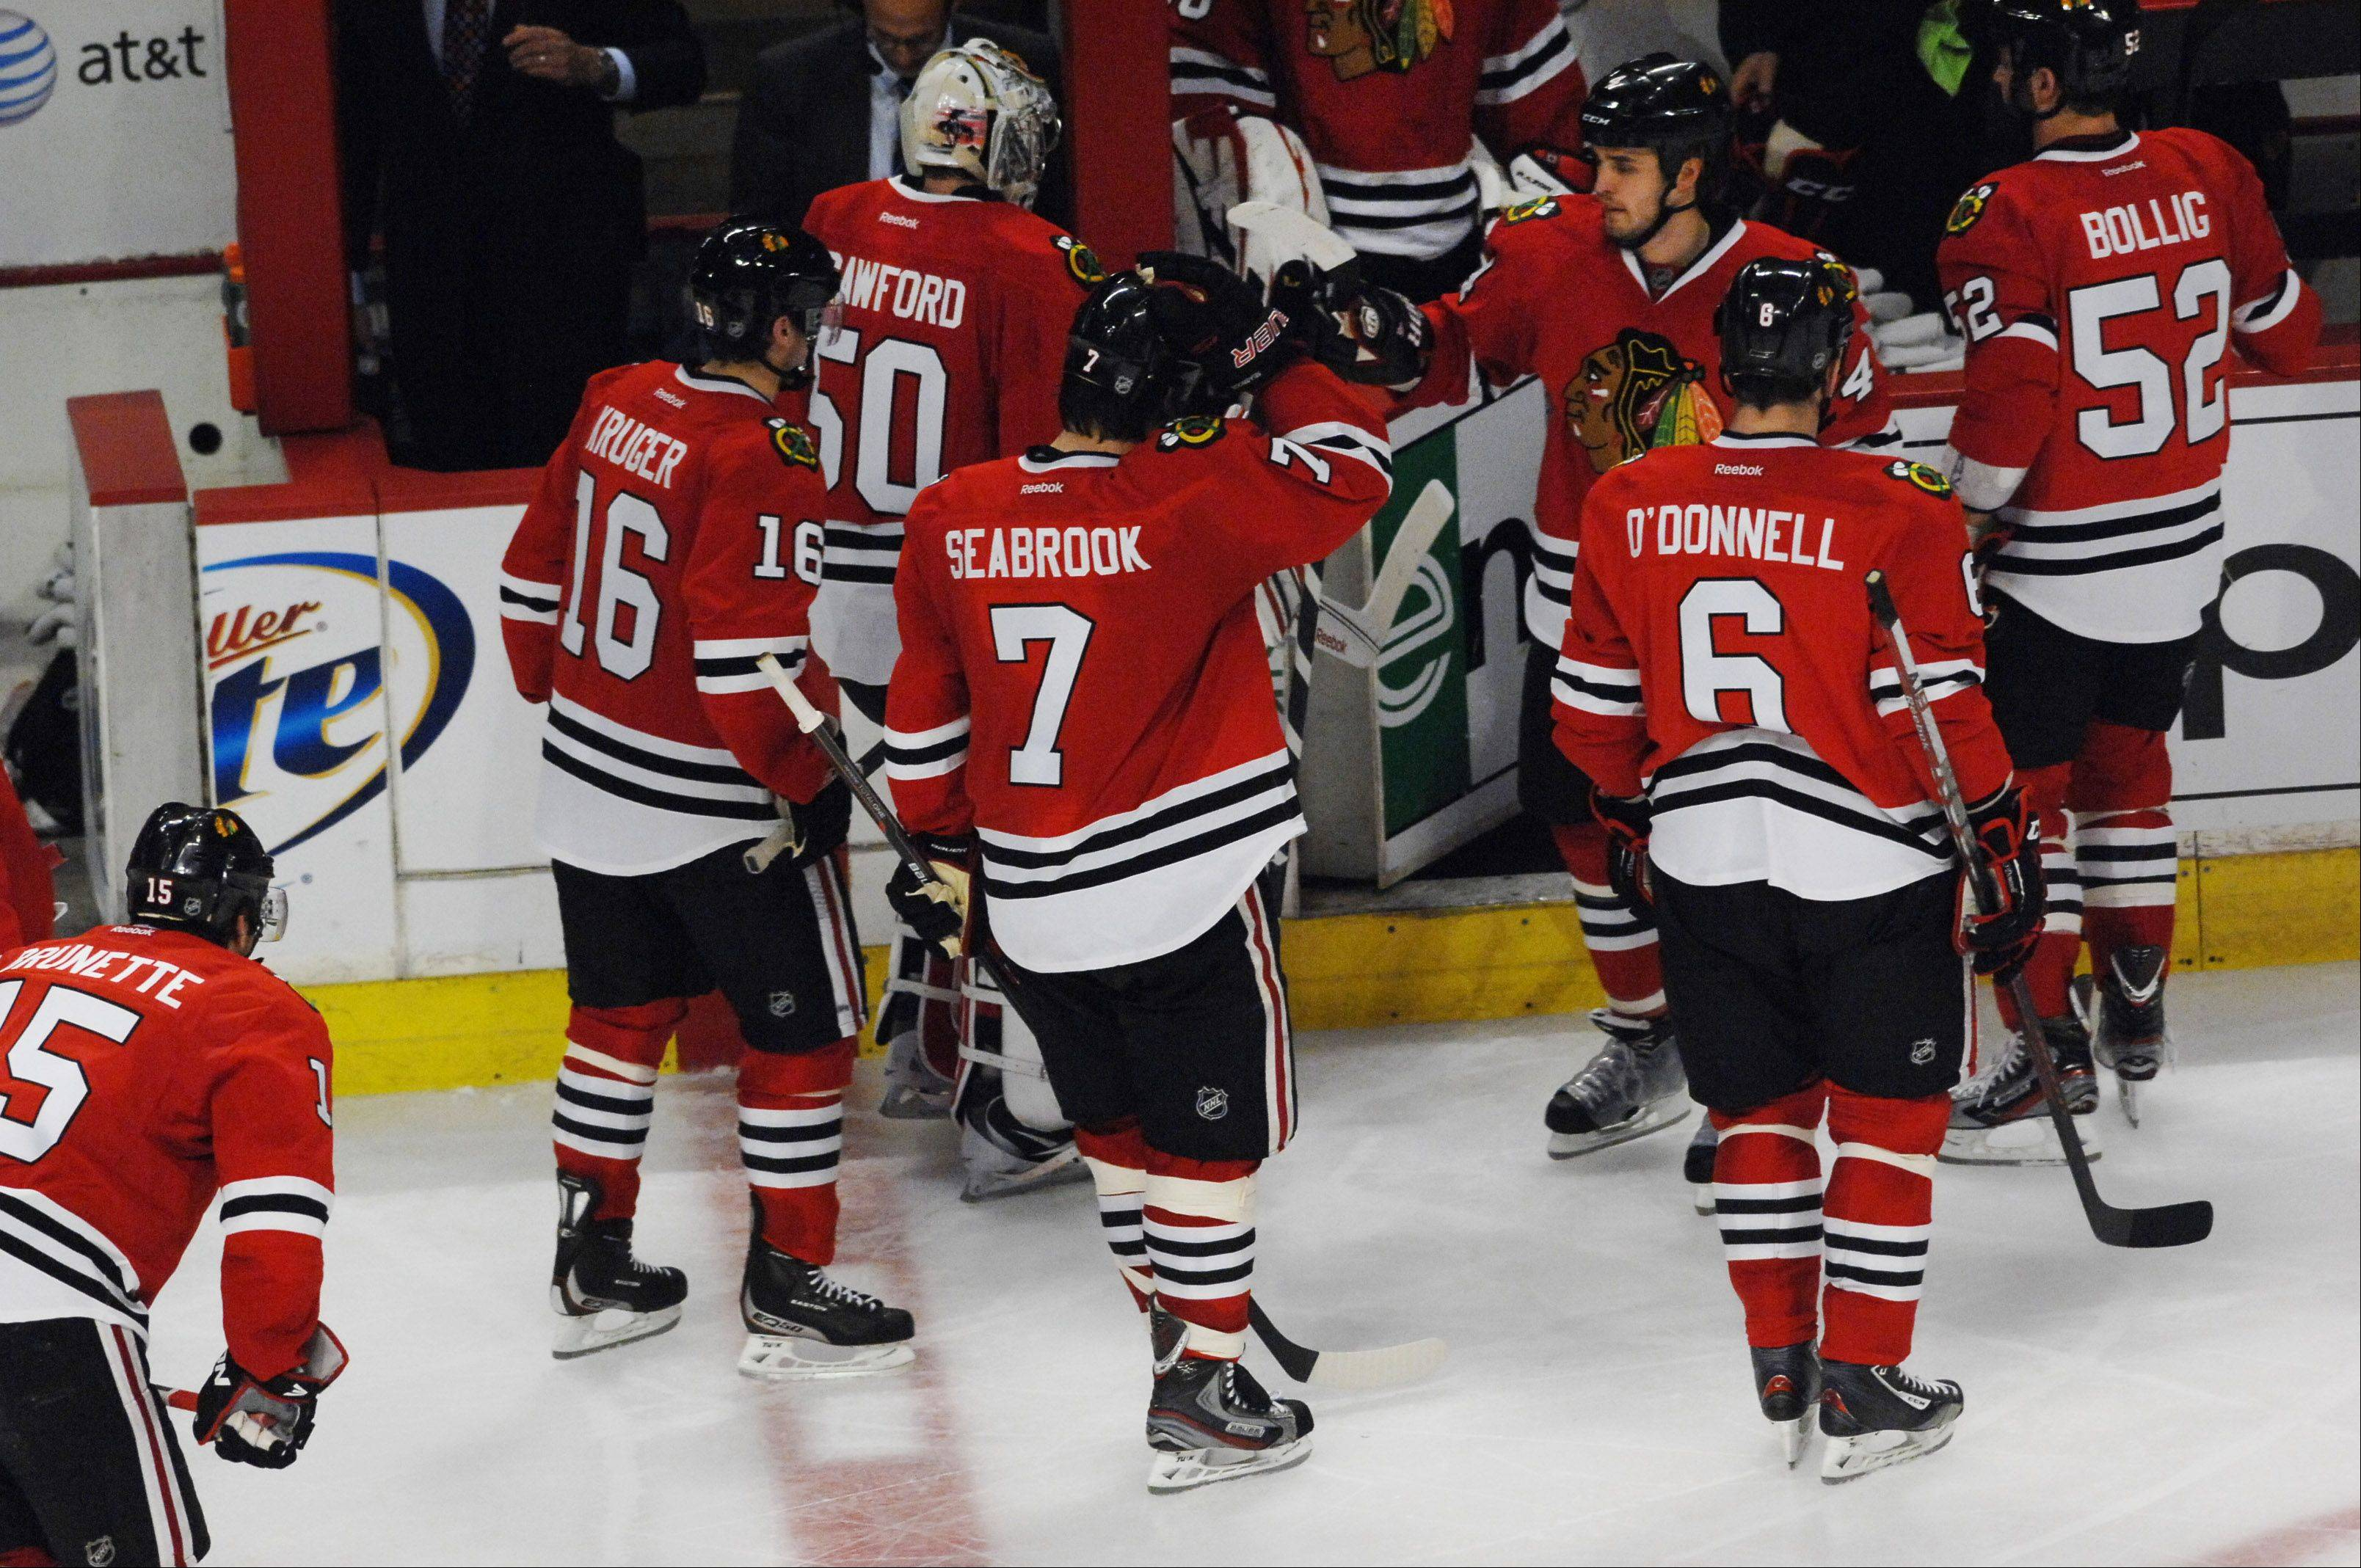 Chicago Blackhawks goalie Corey Crawford leaves the ice with his teammates after losing in overtime.